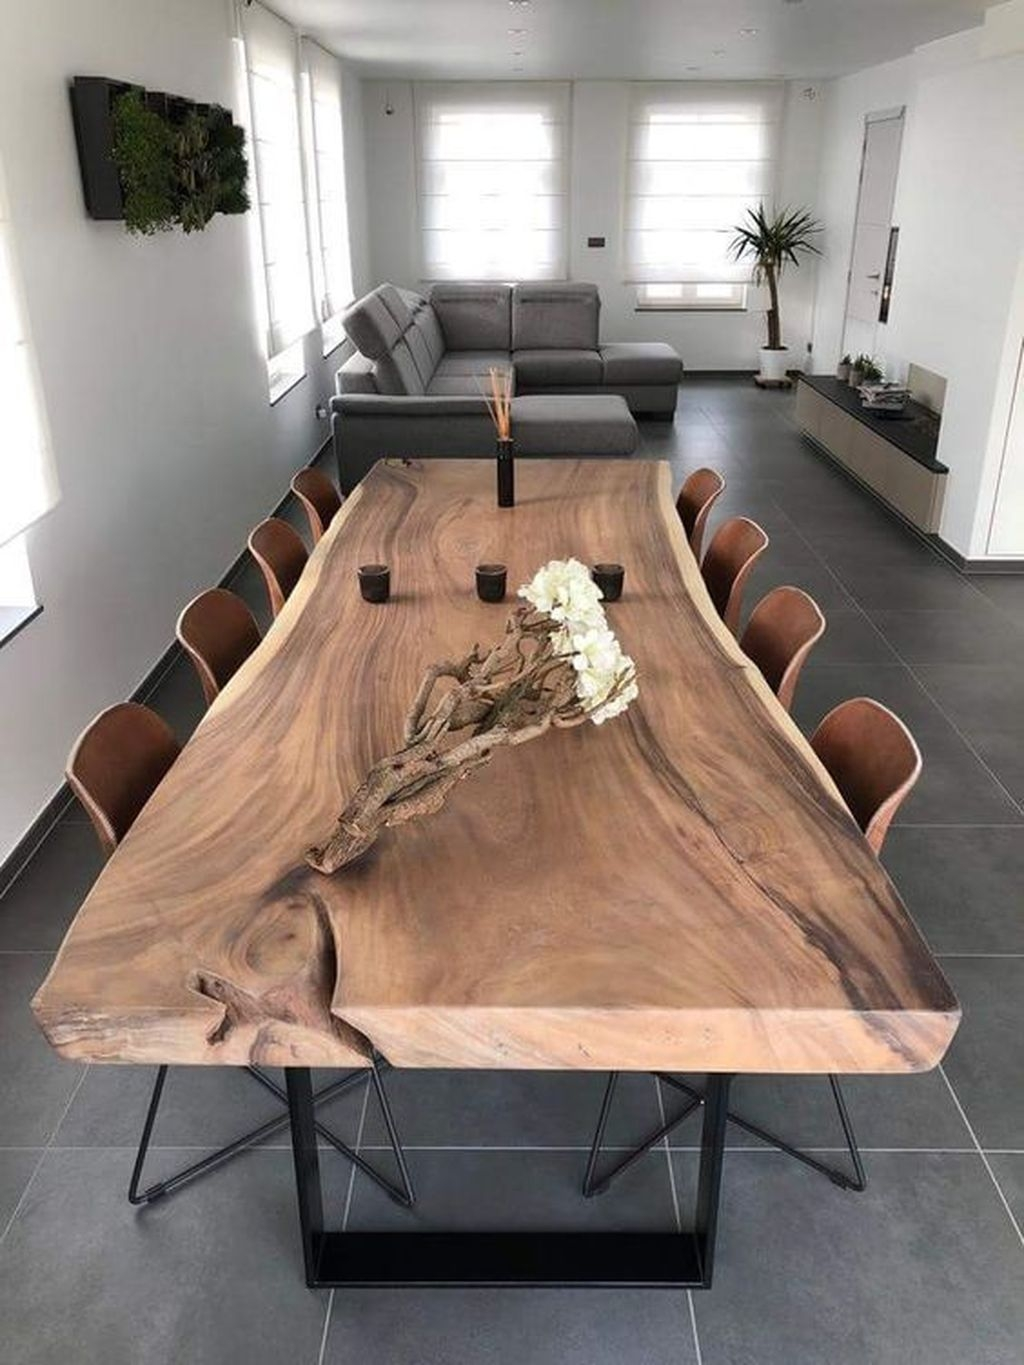 Genius Dining Room Design Ideas You Were Looking For11